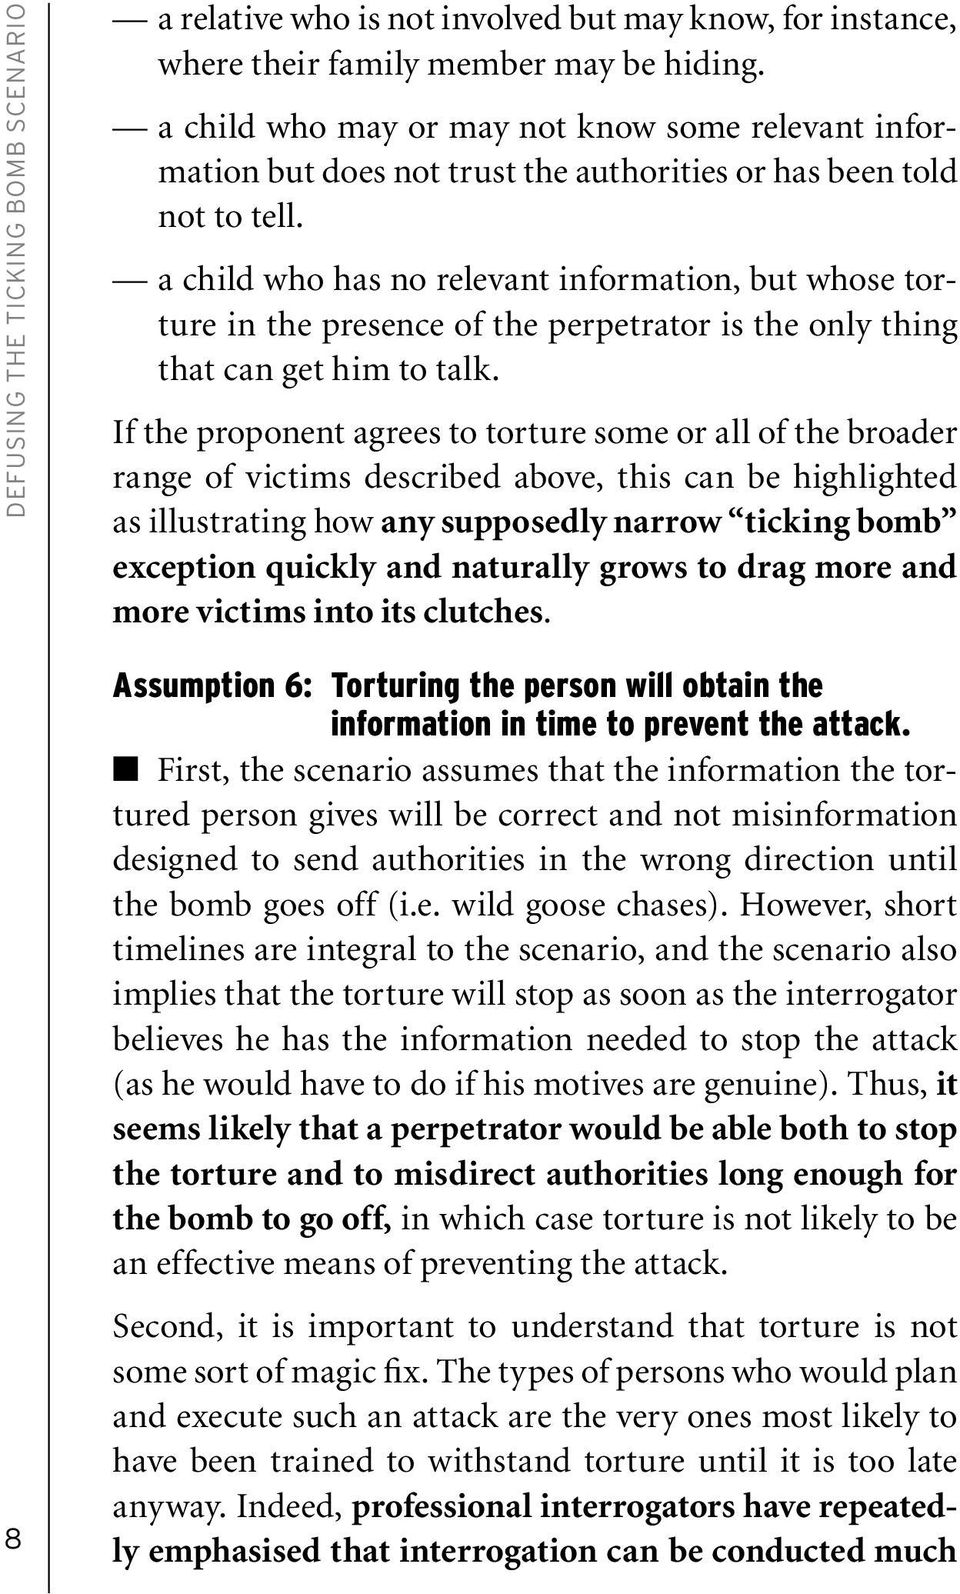 a child who has no relevant information, but whose torture in the presence of the perpetrator is the only thing that can get him to talk.